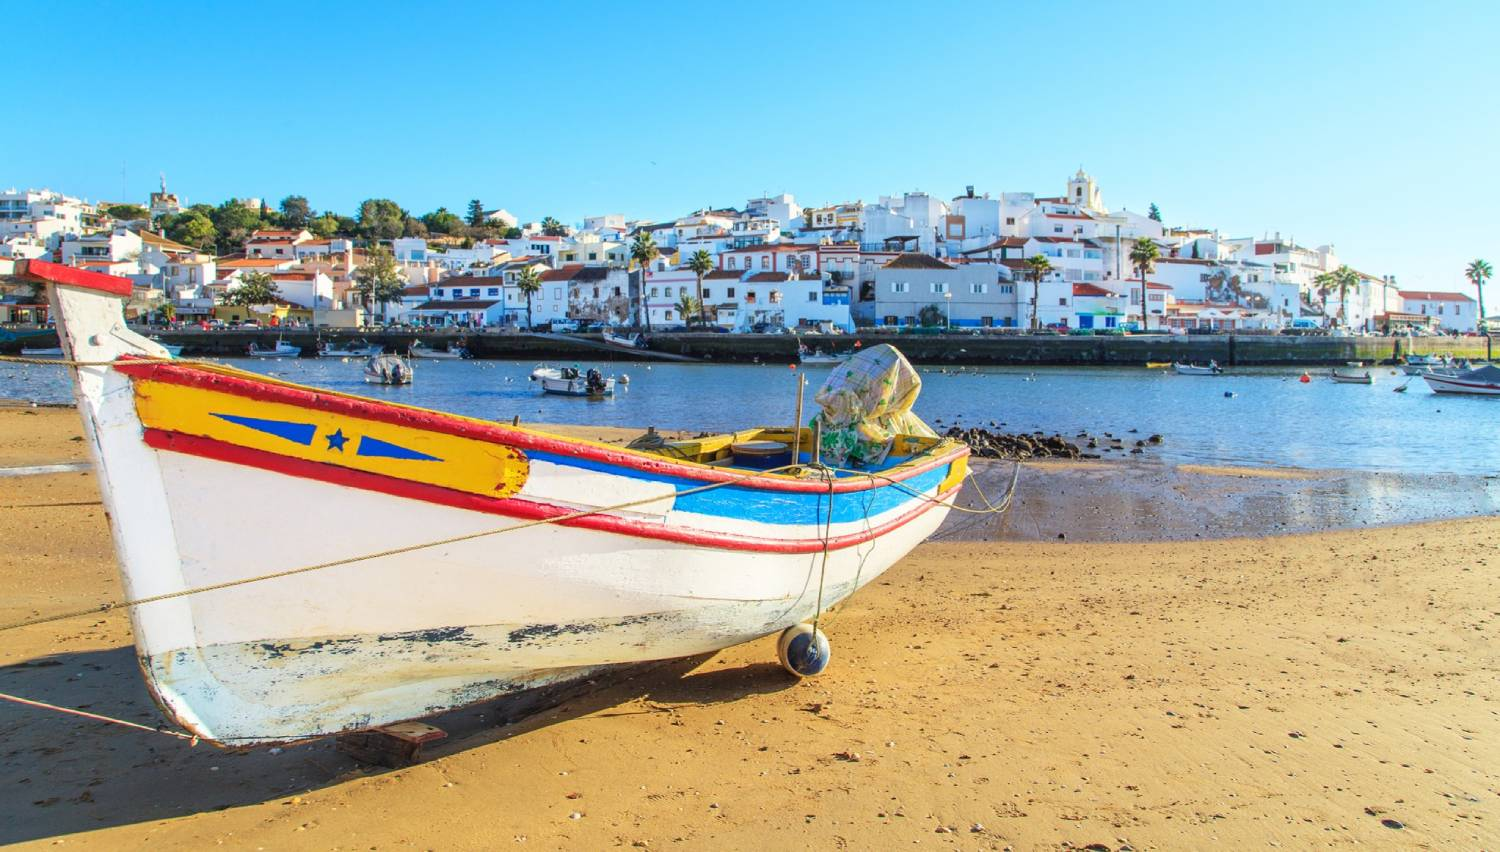 Portimao - The Best Places To Visit In Portugal